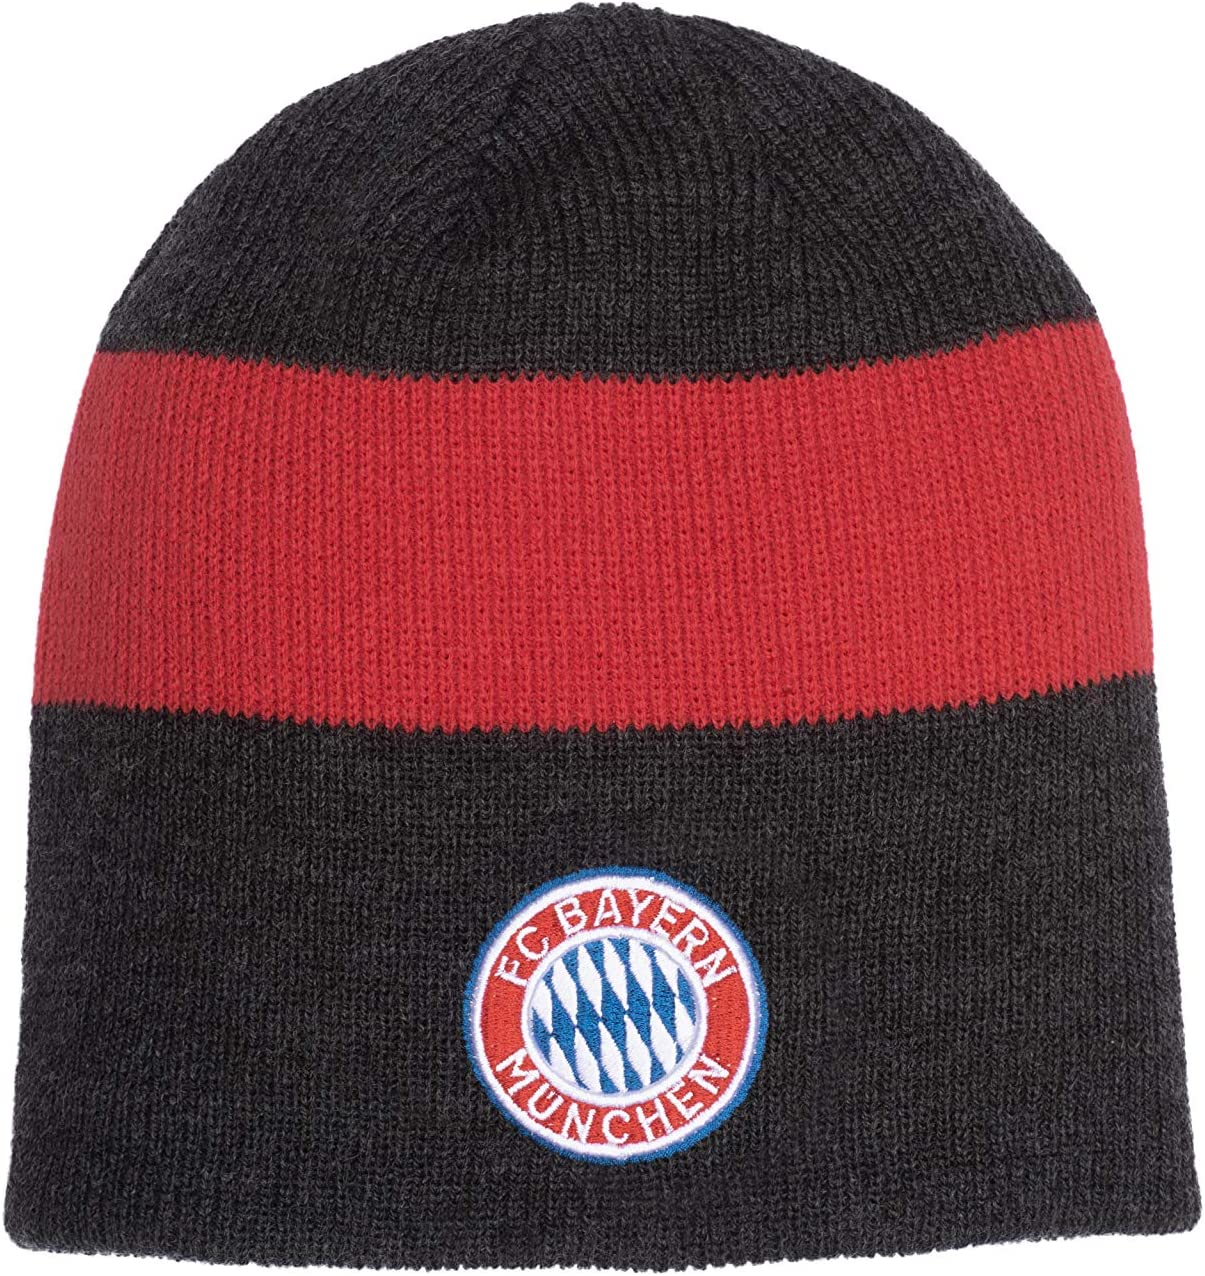 Bayern Munich - Fury Knit Beanie (Fi Collection)